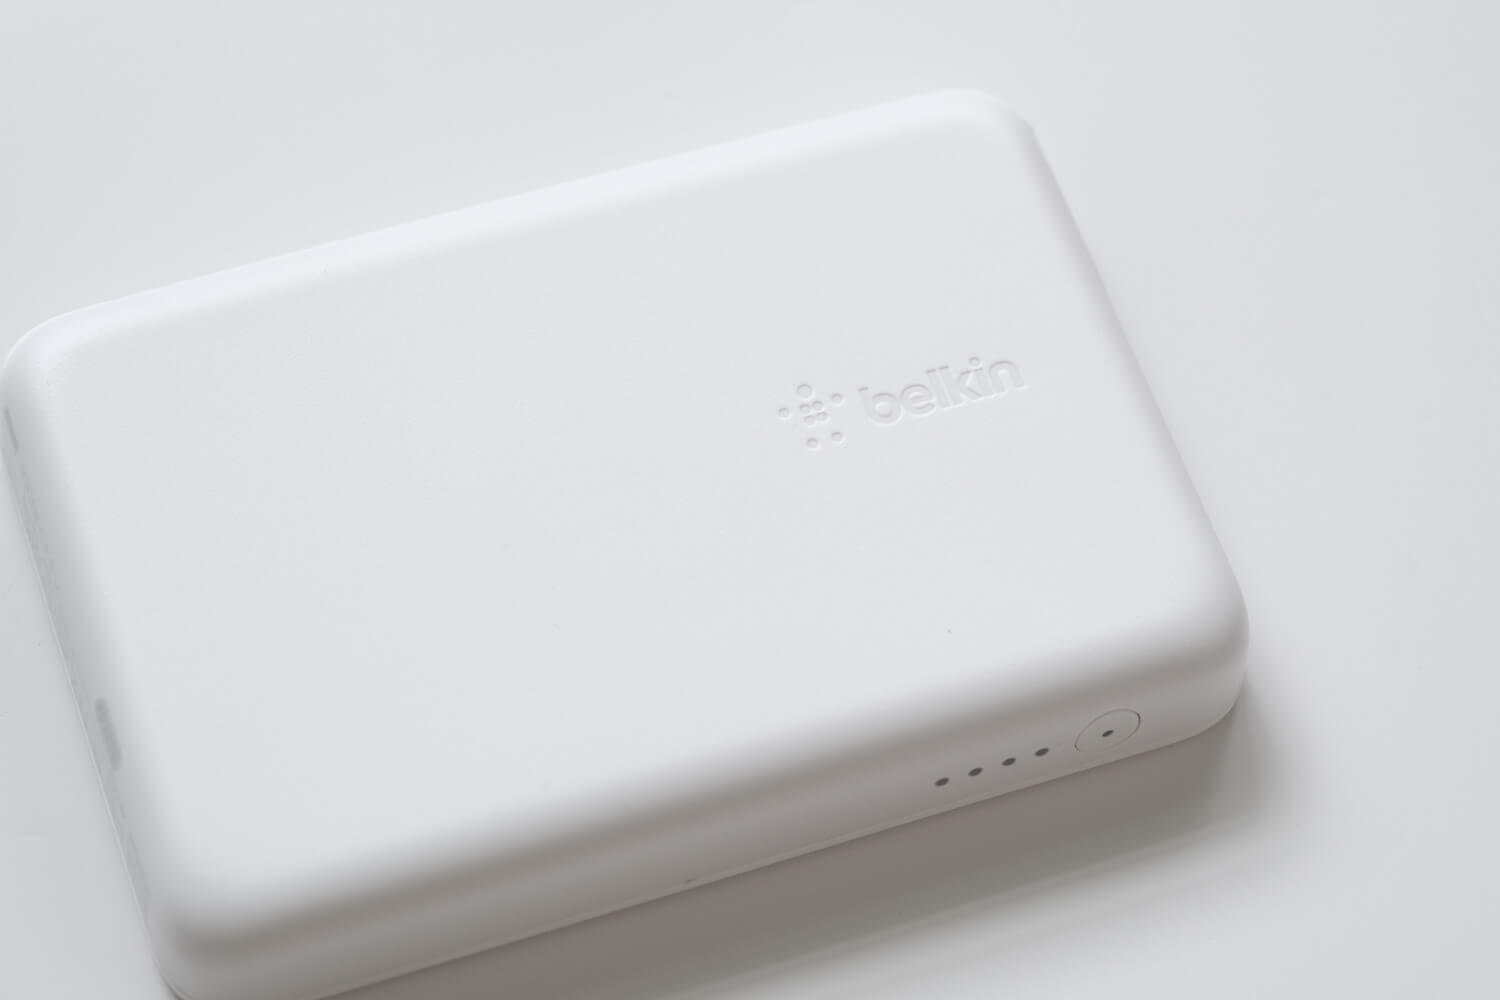 Belkin BOOST↑CHARGE™ MagSafe対応 磁気ワイヤレスモバイルバッテリーの本体のロゴ